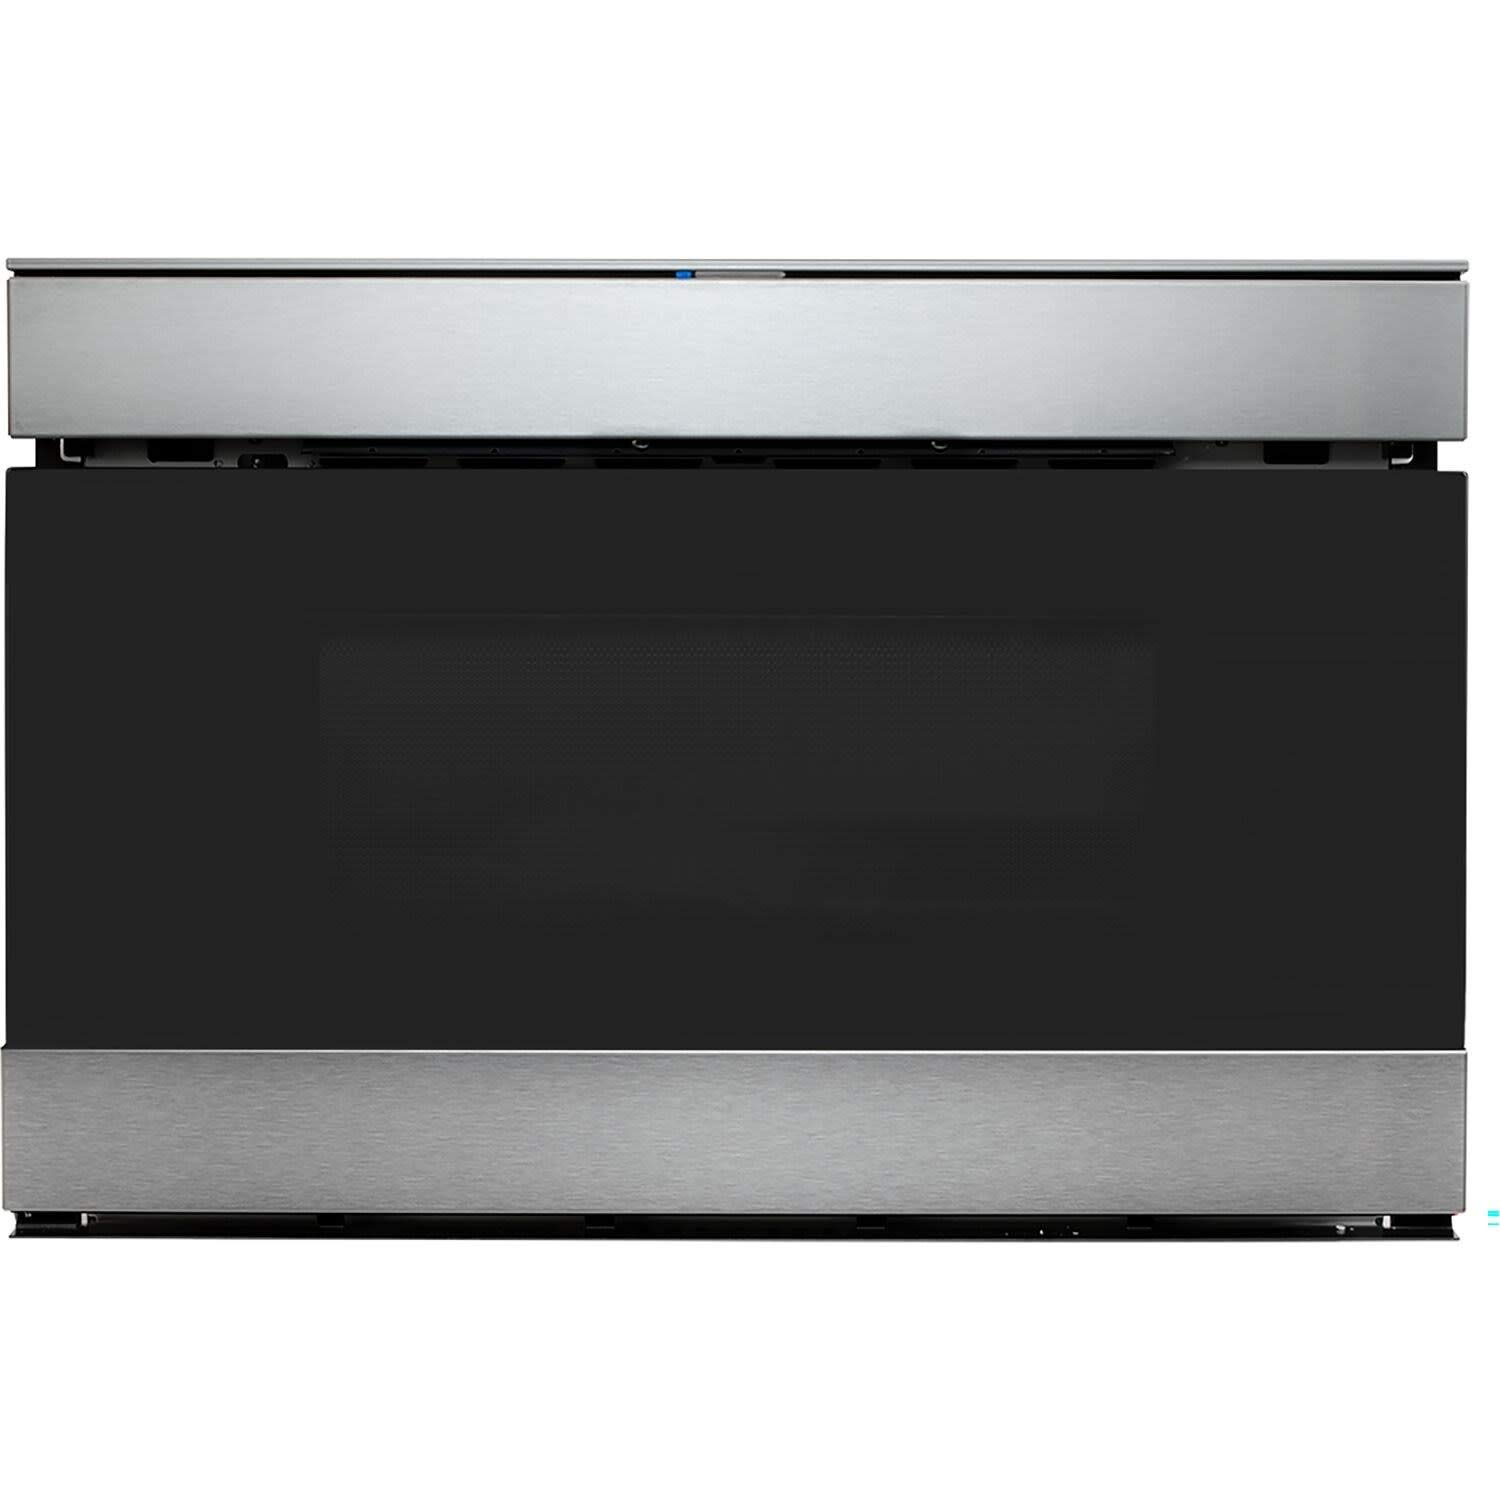 """Sharp SMD2489ES 24"""" loT Microwave Drawer with 1.2 cu. ft. Capacity, 950 Watts, 11 Power Levels, Edge-to-Edge Black Glass, in Stainless Steel"""